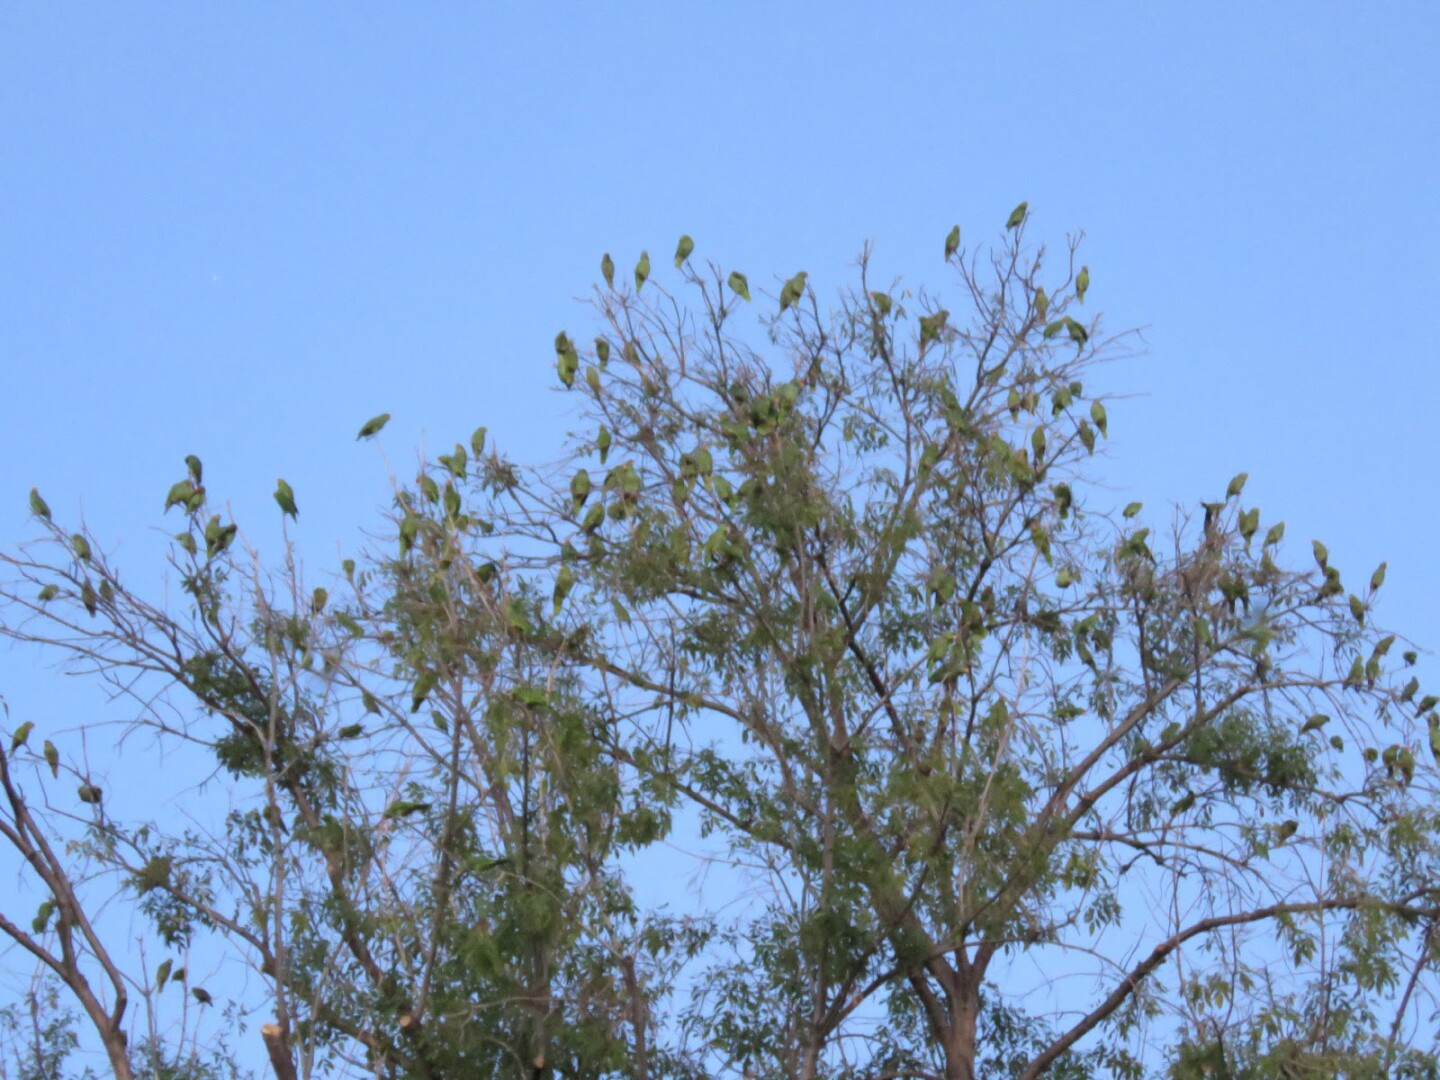 Dozens of parrots perched on a tree. | Ursula K. Heise